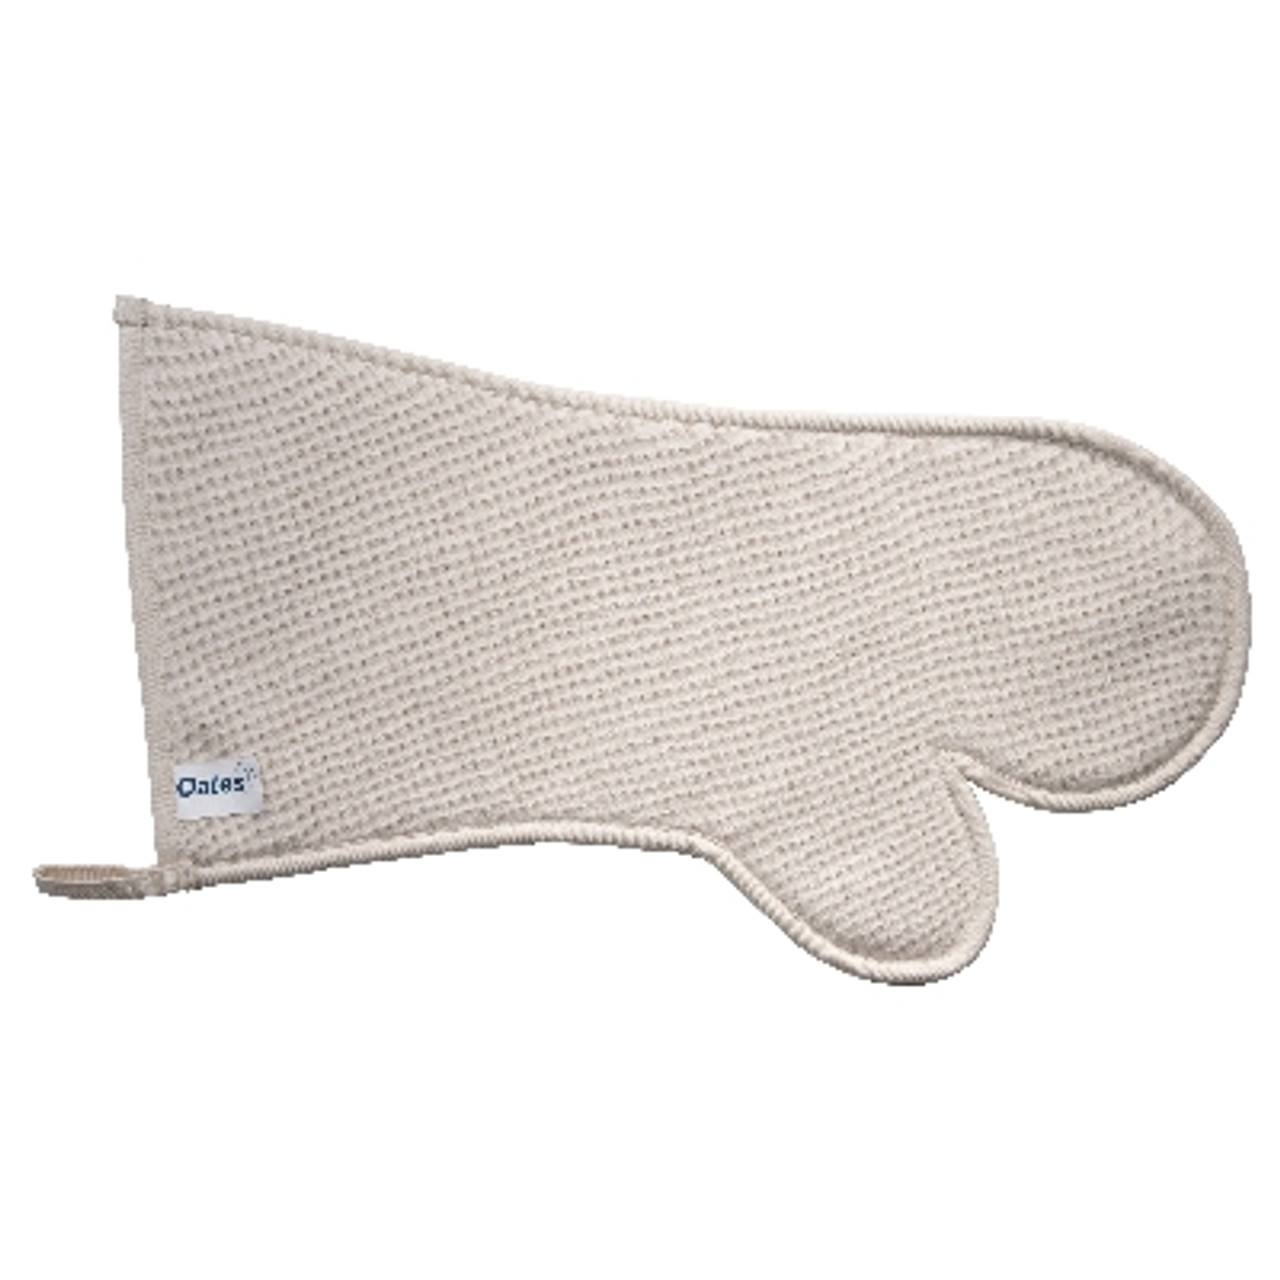 Single Elbow Length Oven Glove